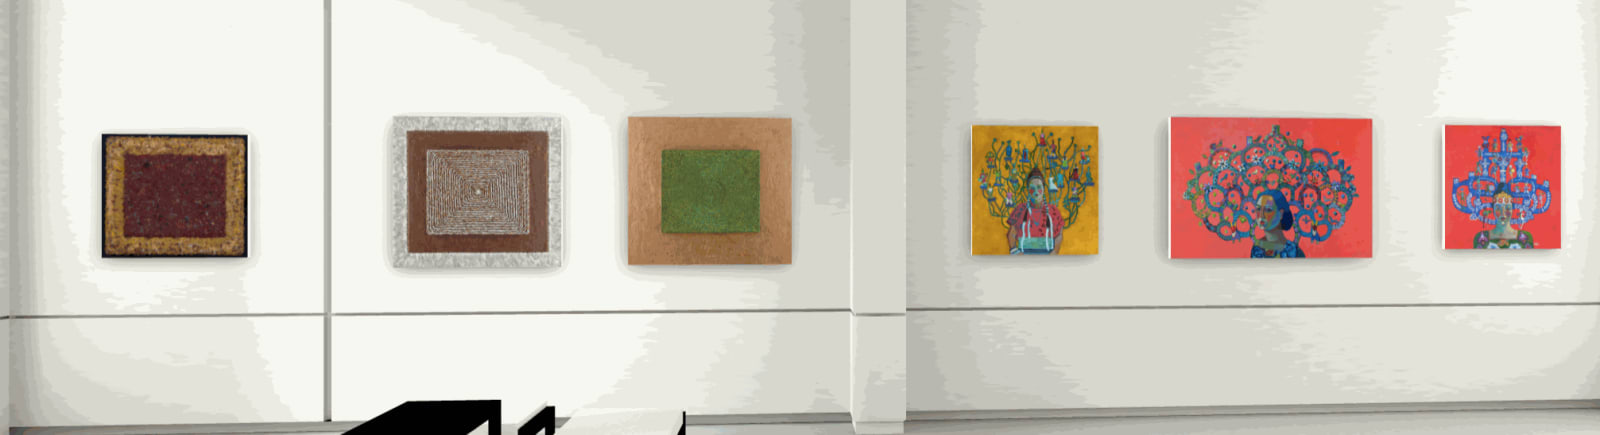 left to right: Feather artworks by Nicki Marx, paintings by Kathy Sosa